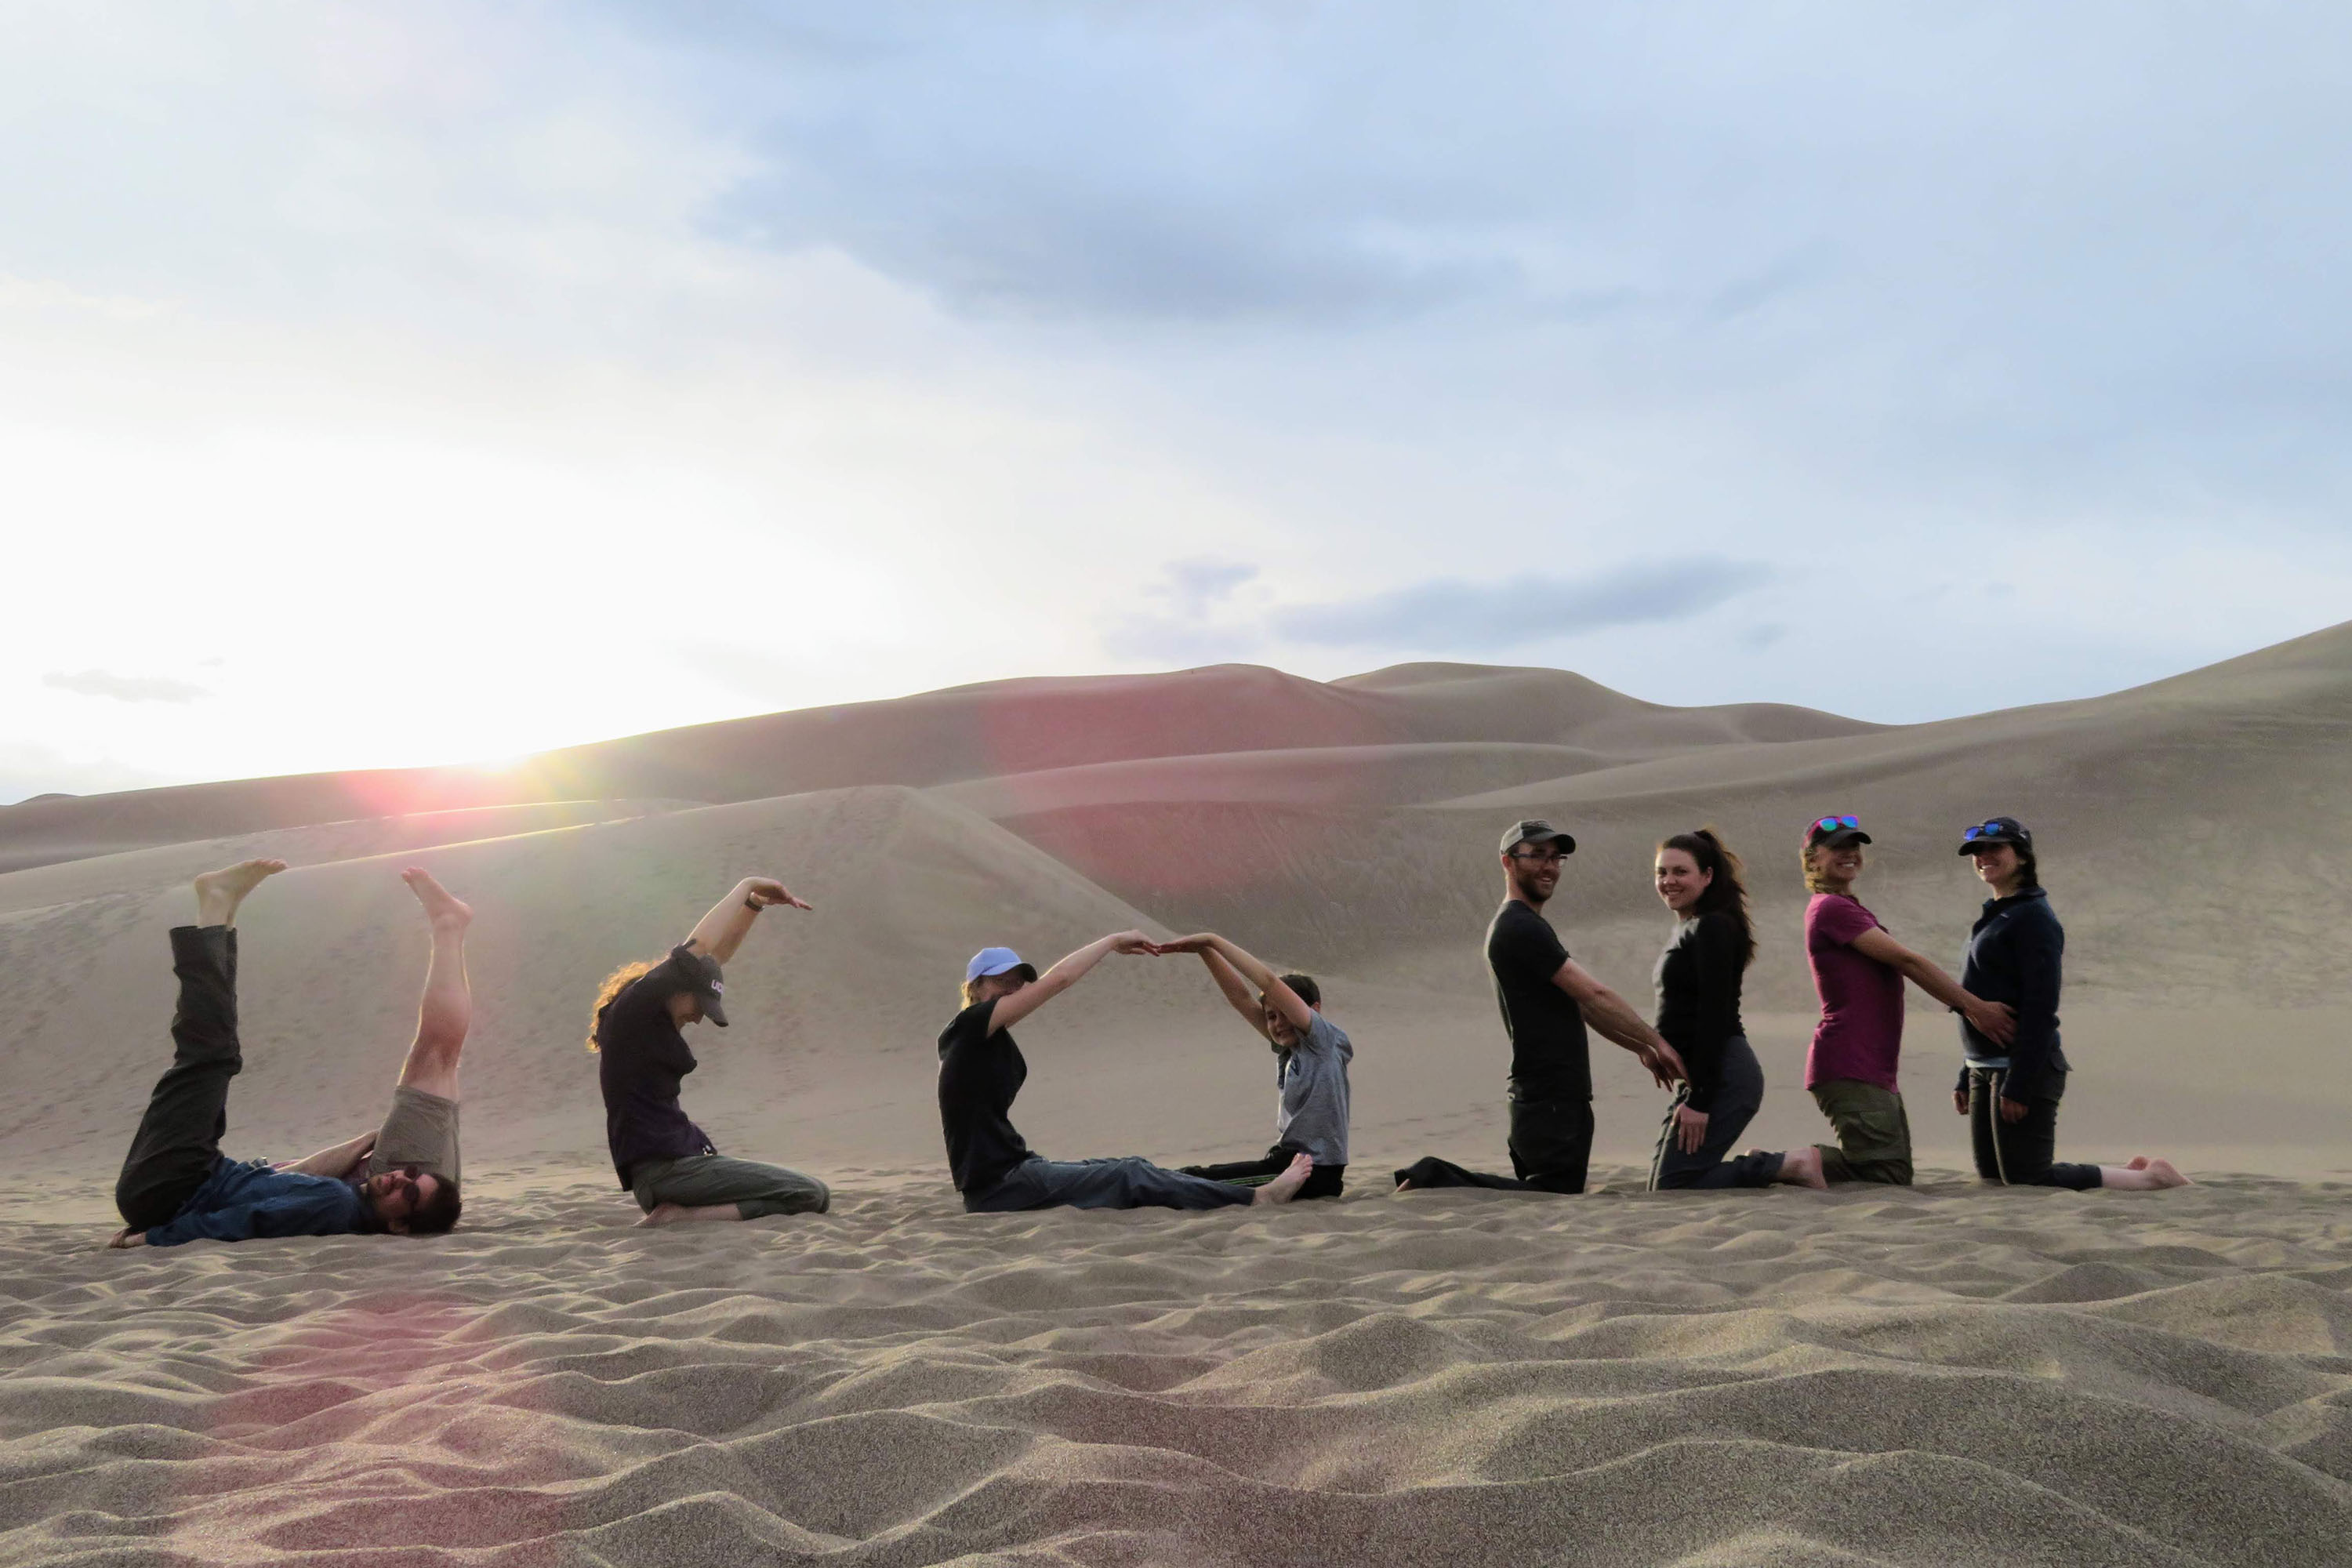 Students on dune: Geosciences students spell 'UConn' in May 2018 at Great Sand Dunes National Park and Preserve, Colorado. The trip was part of a field course, 'Field Geology & Landscapes of the Western U.S.,' which included a two-week field trip to Colorado, Utah, and Arizona. (Will Ouimet/UConn Photo)